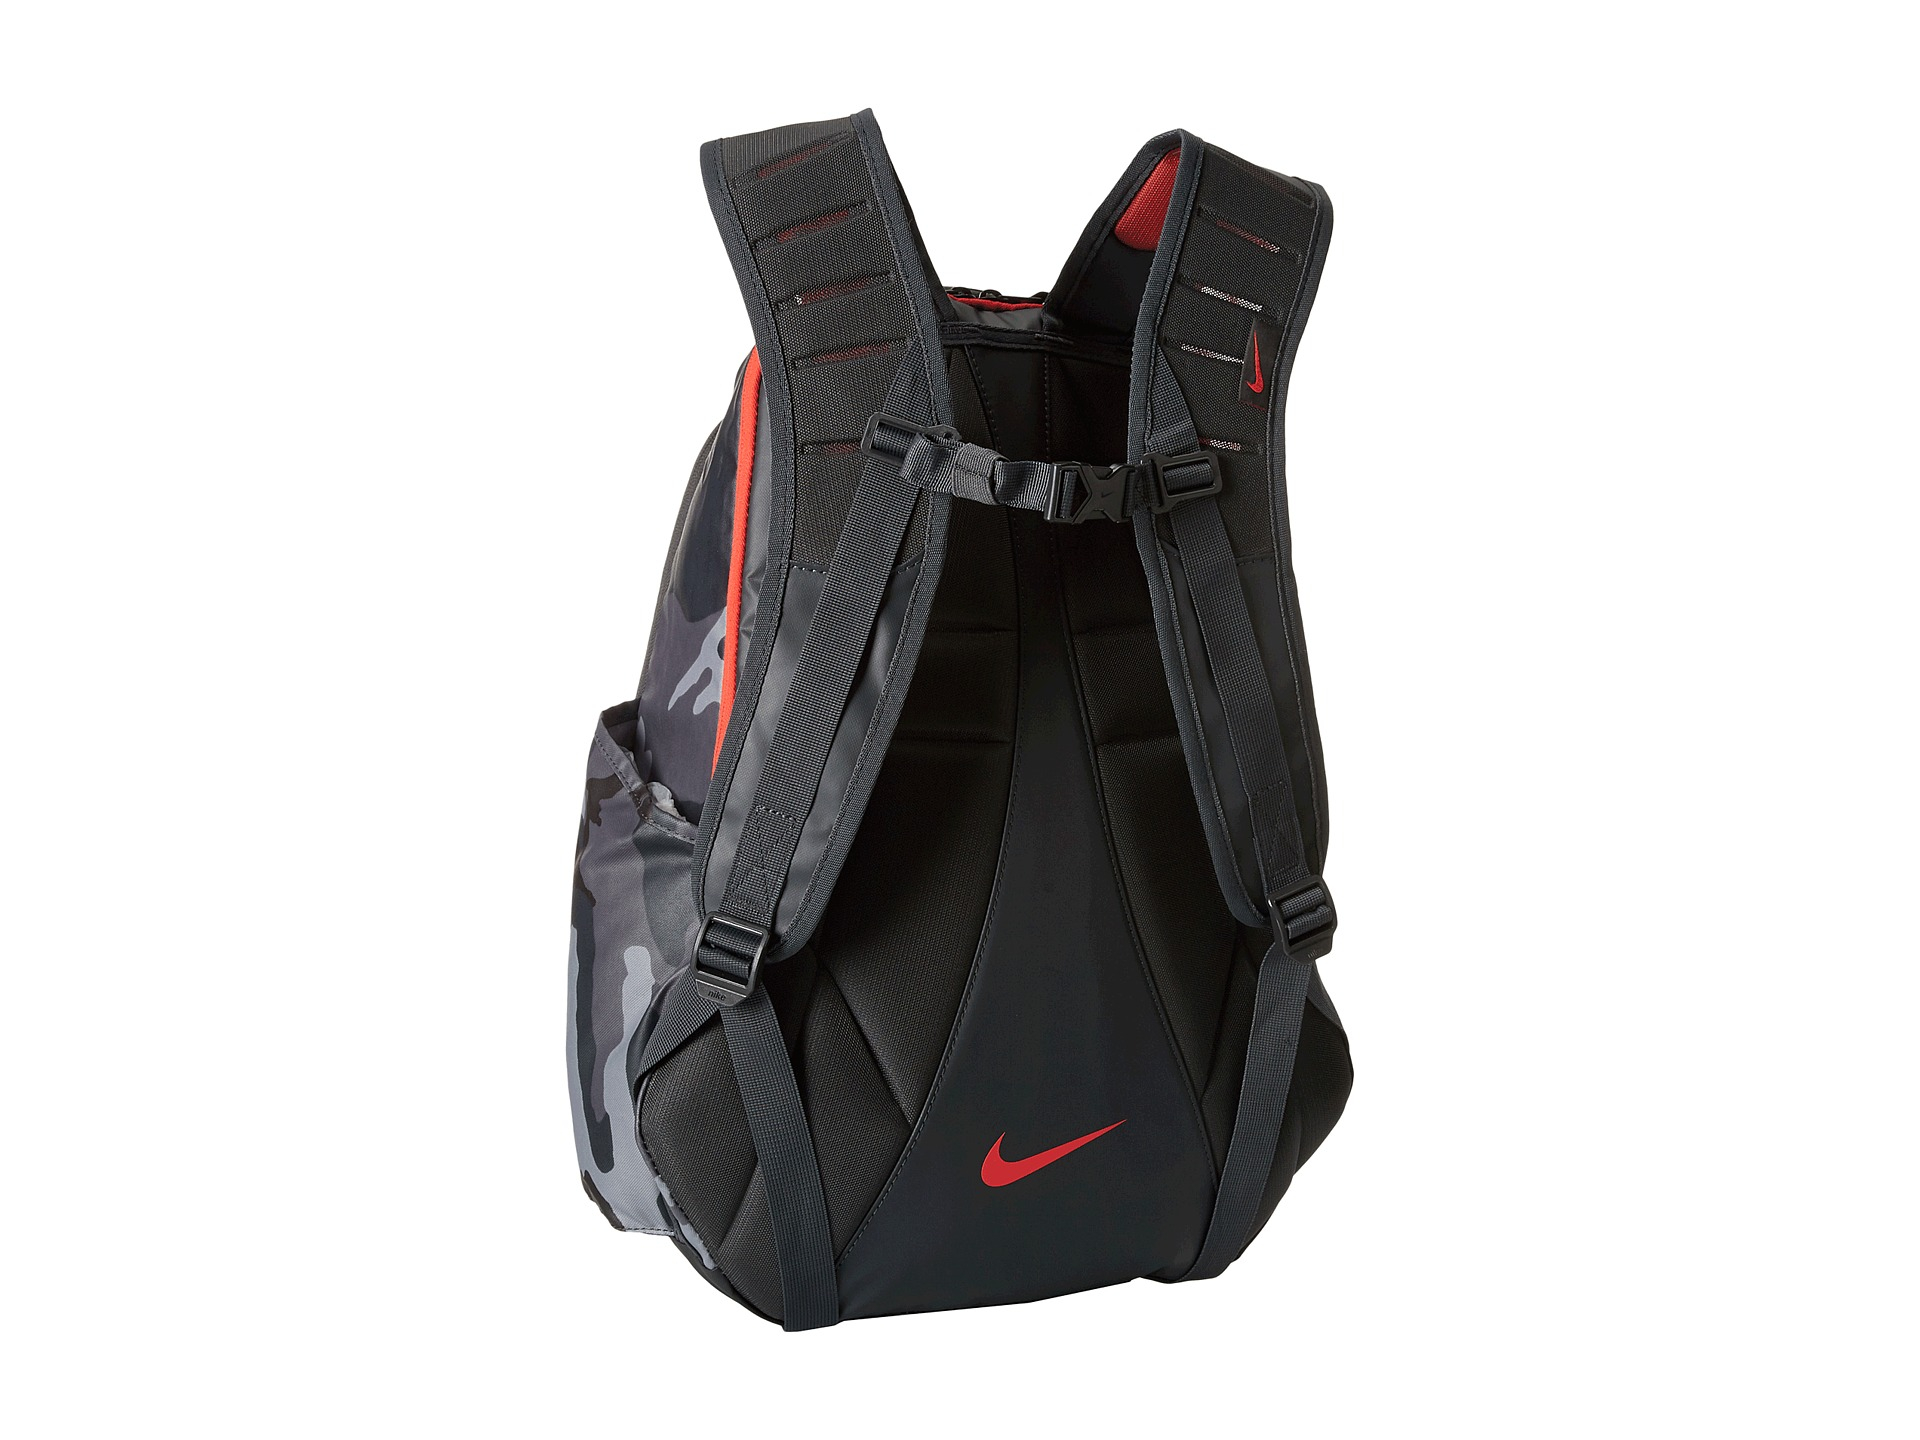 b6b2516a89 Lyst - Nike Ultimatum Utility Backpack - Graphic in Gray for Men